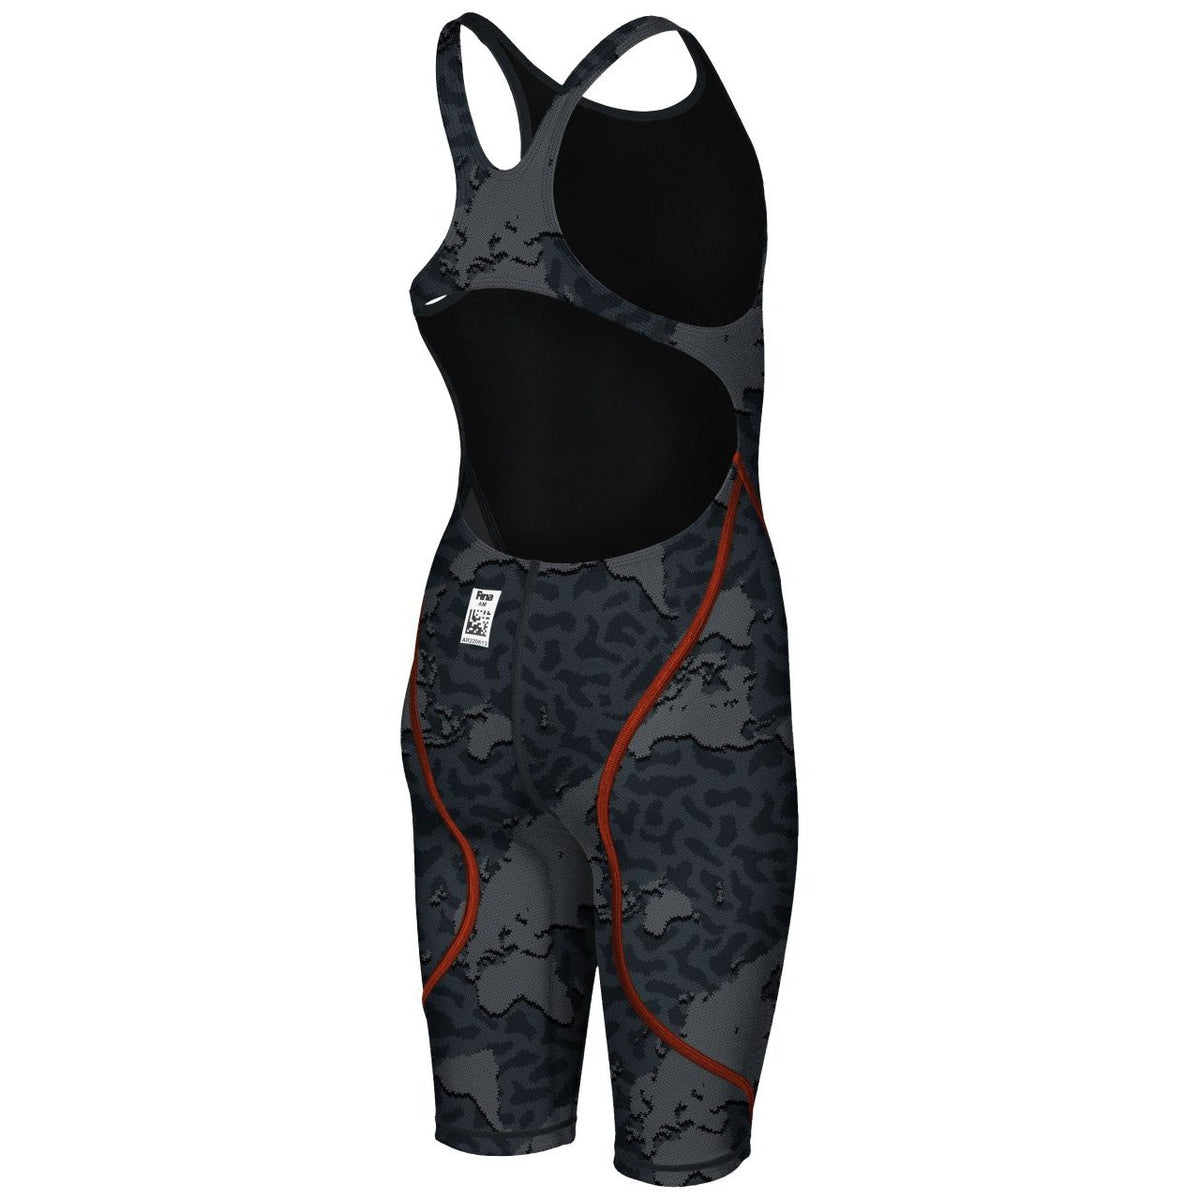 ARENA POWERSKIN ST 2.0 Girl's Open Back - Special Limited Edition - Kikko Map-TechSuits.ca